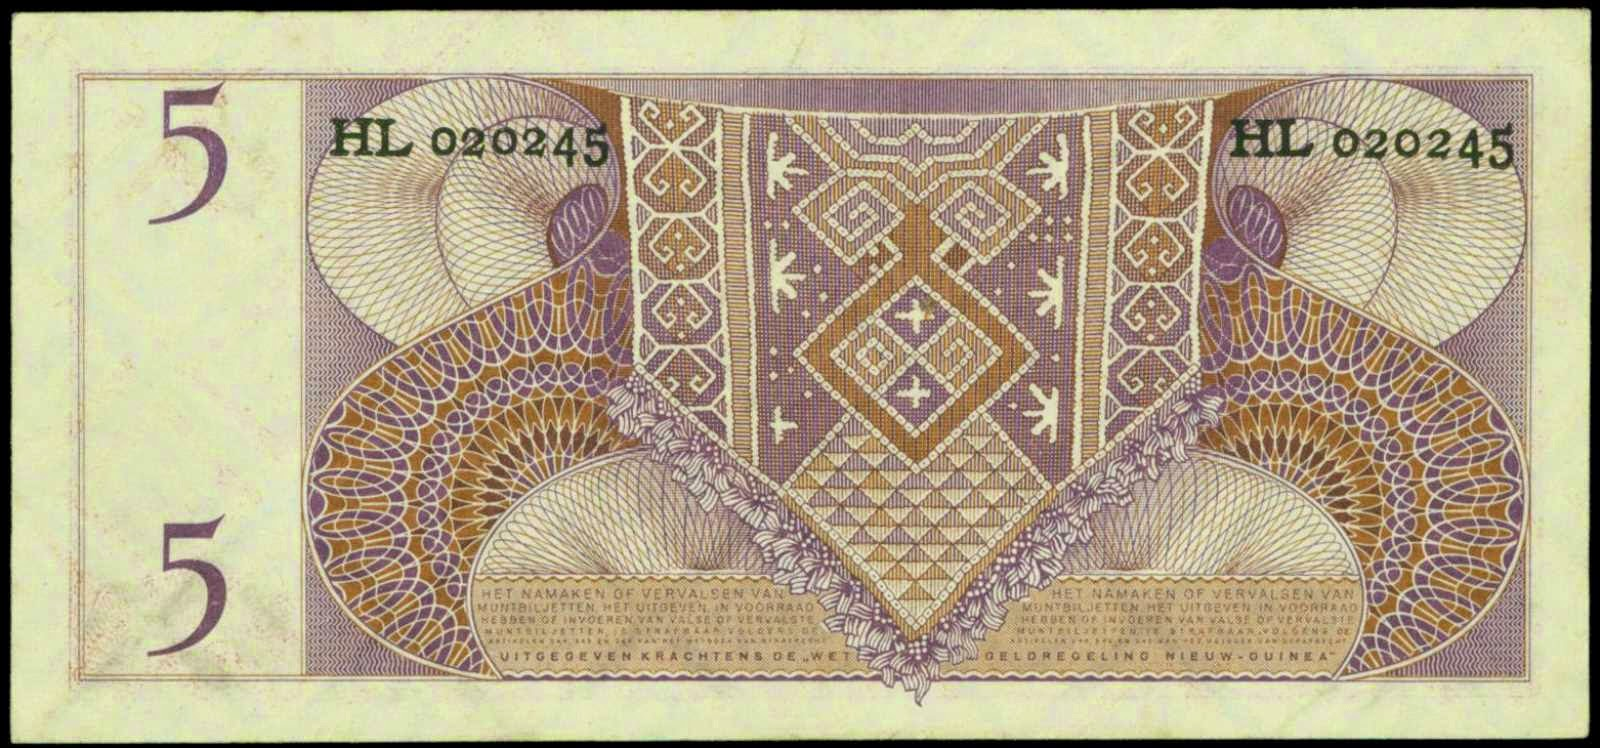 Netherlands New Guinea paper money 5 Gulden note 1954